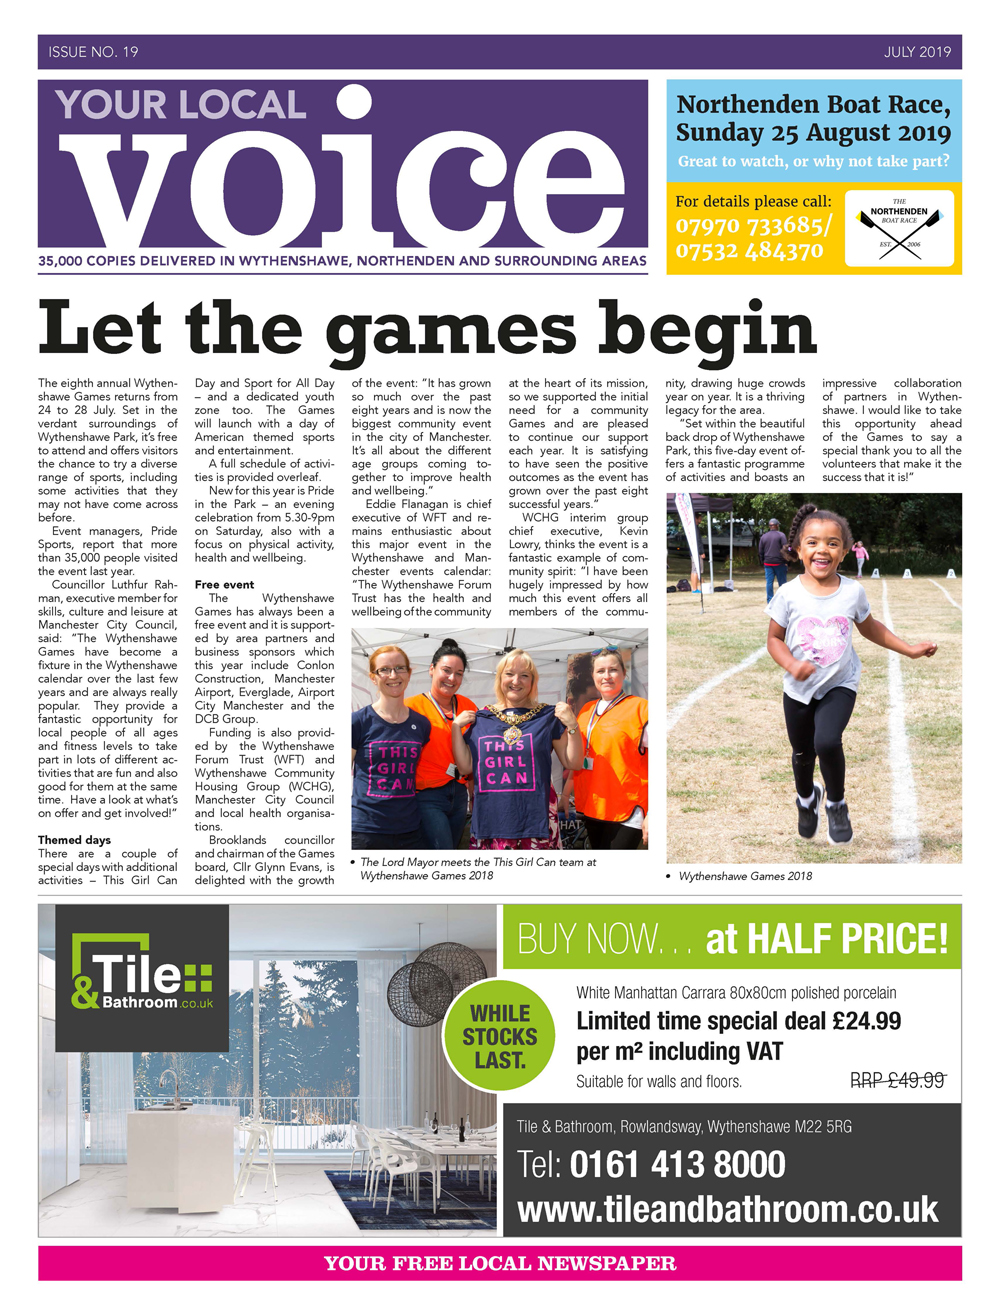 Your Local Voice newspaper issue 19